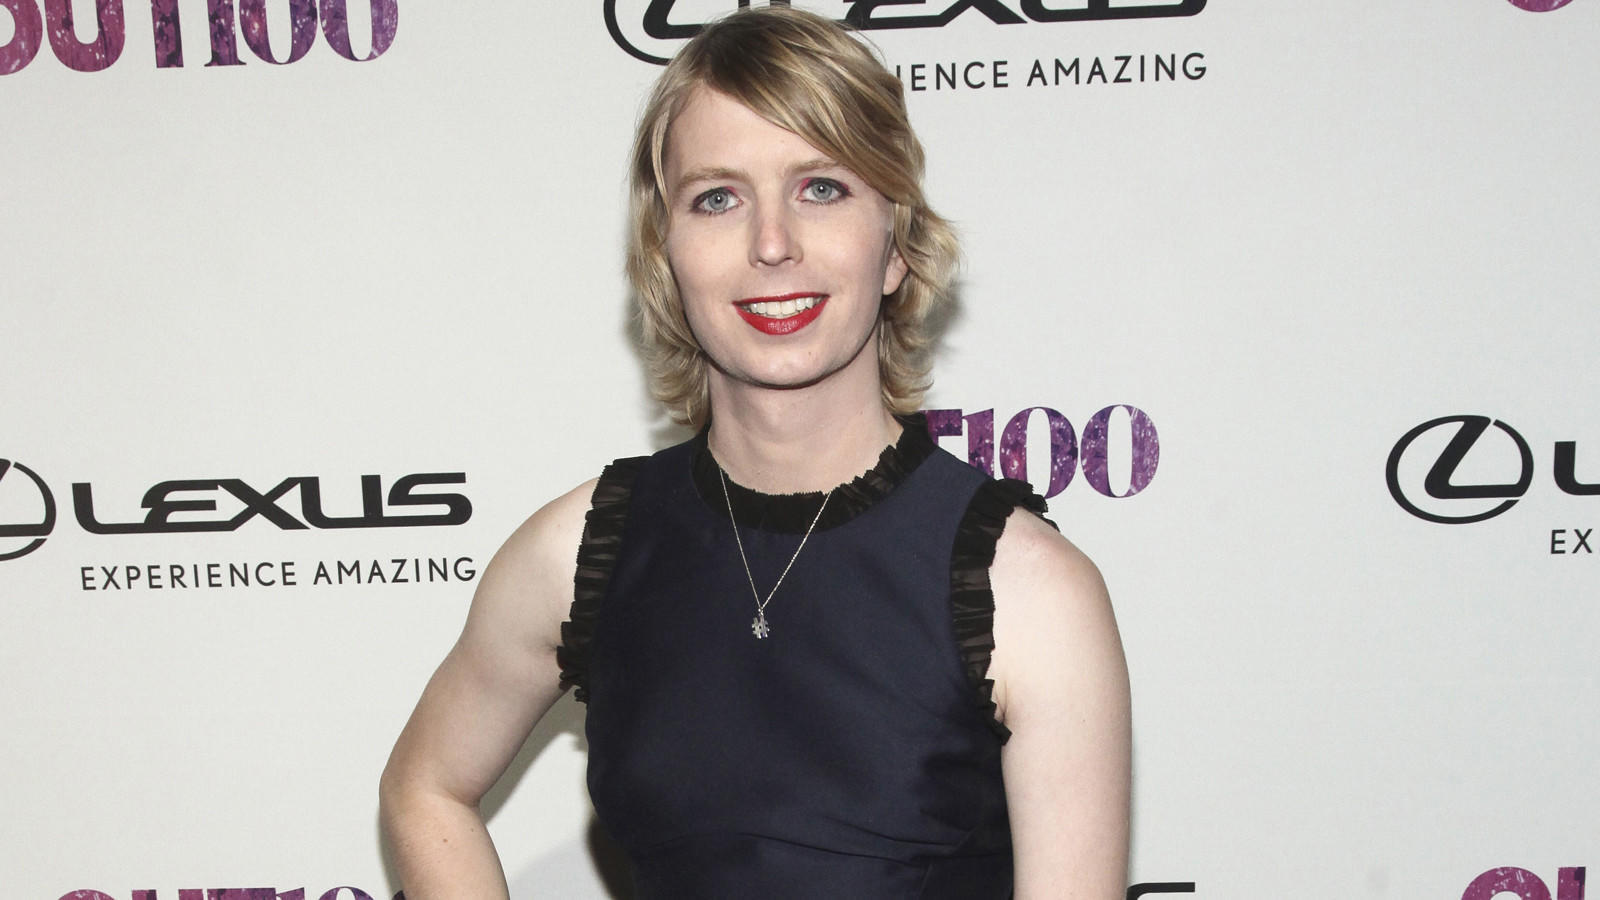 Chelsea Manning will run for the U.S. Senate in Maryland.